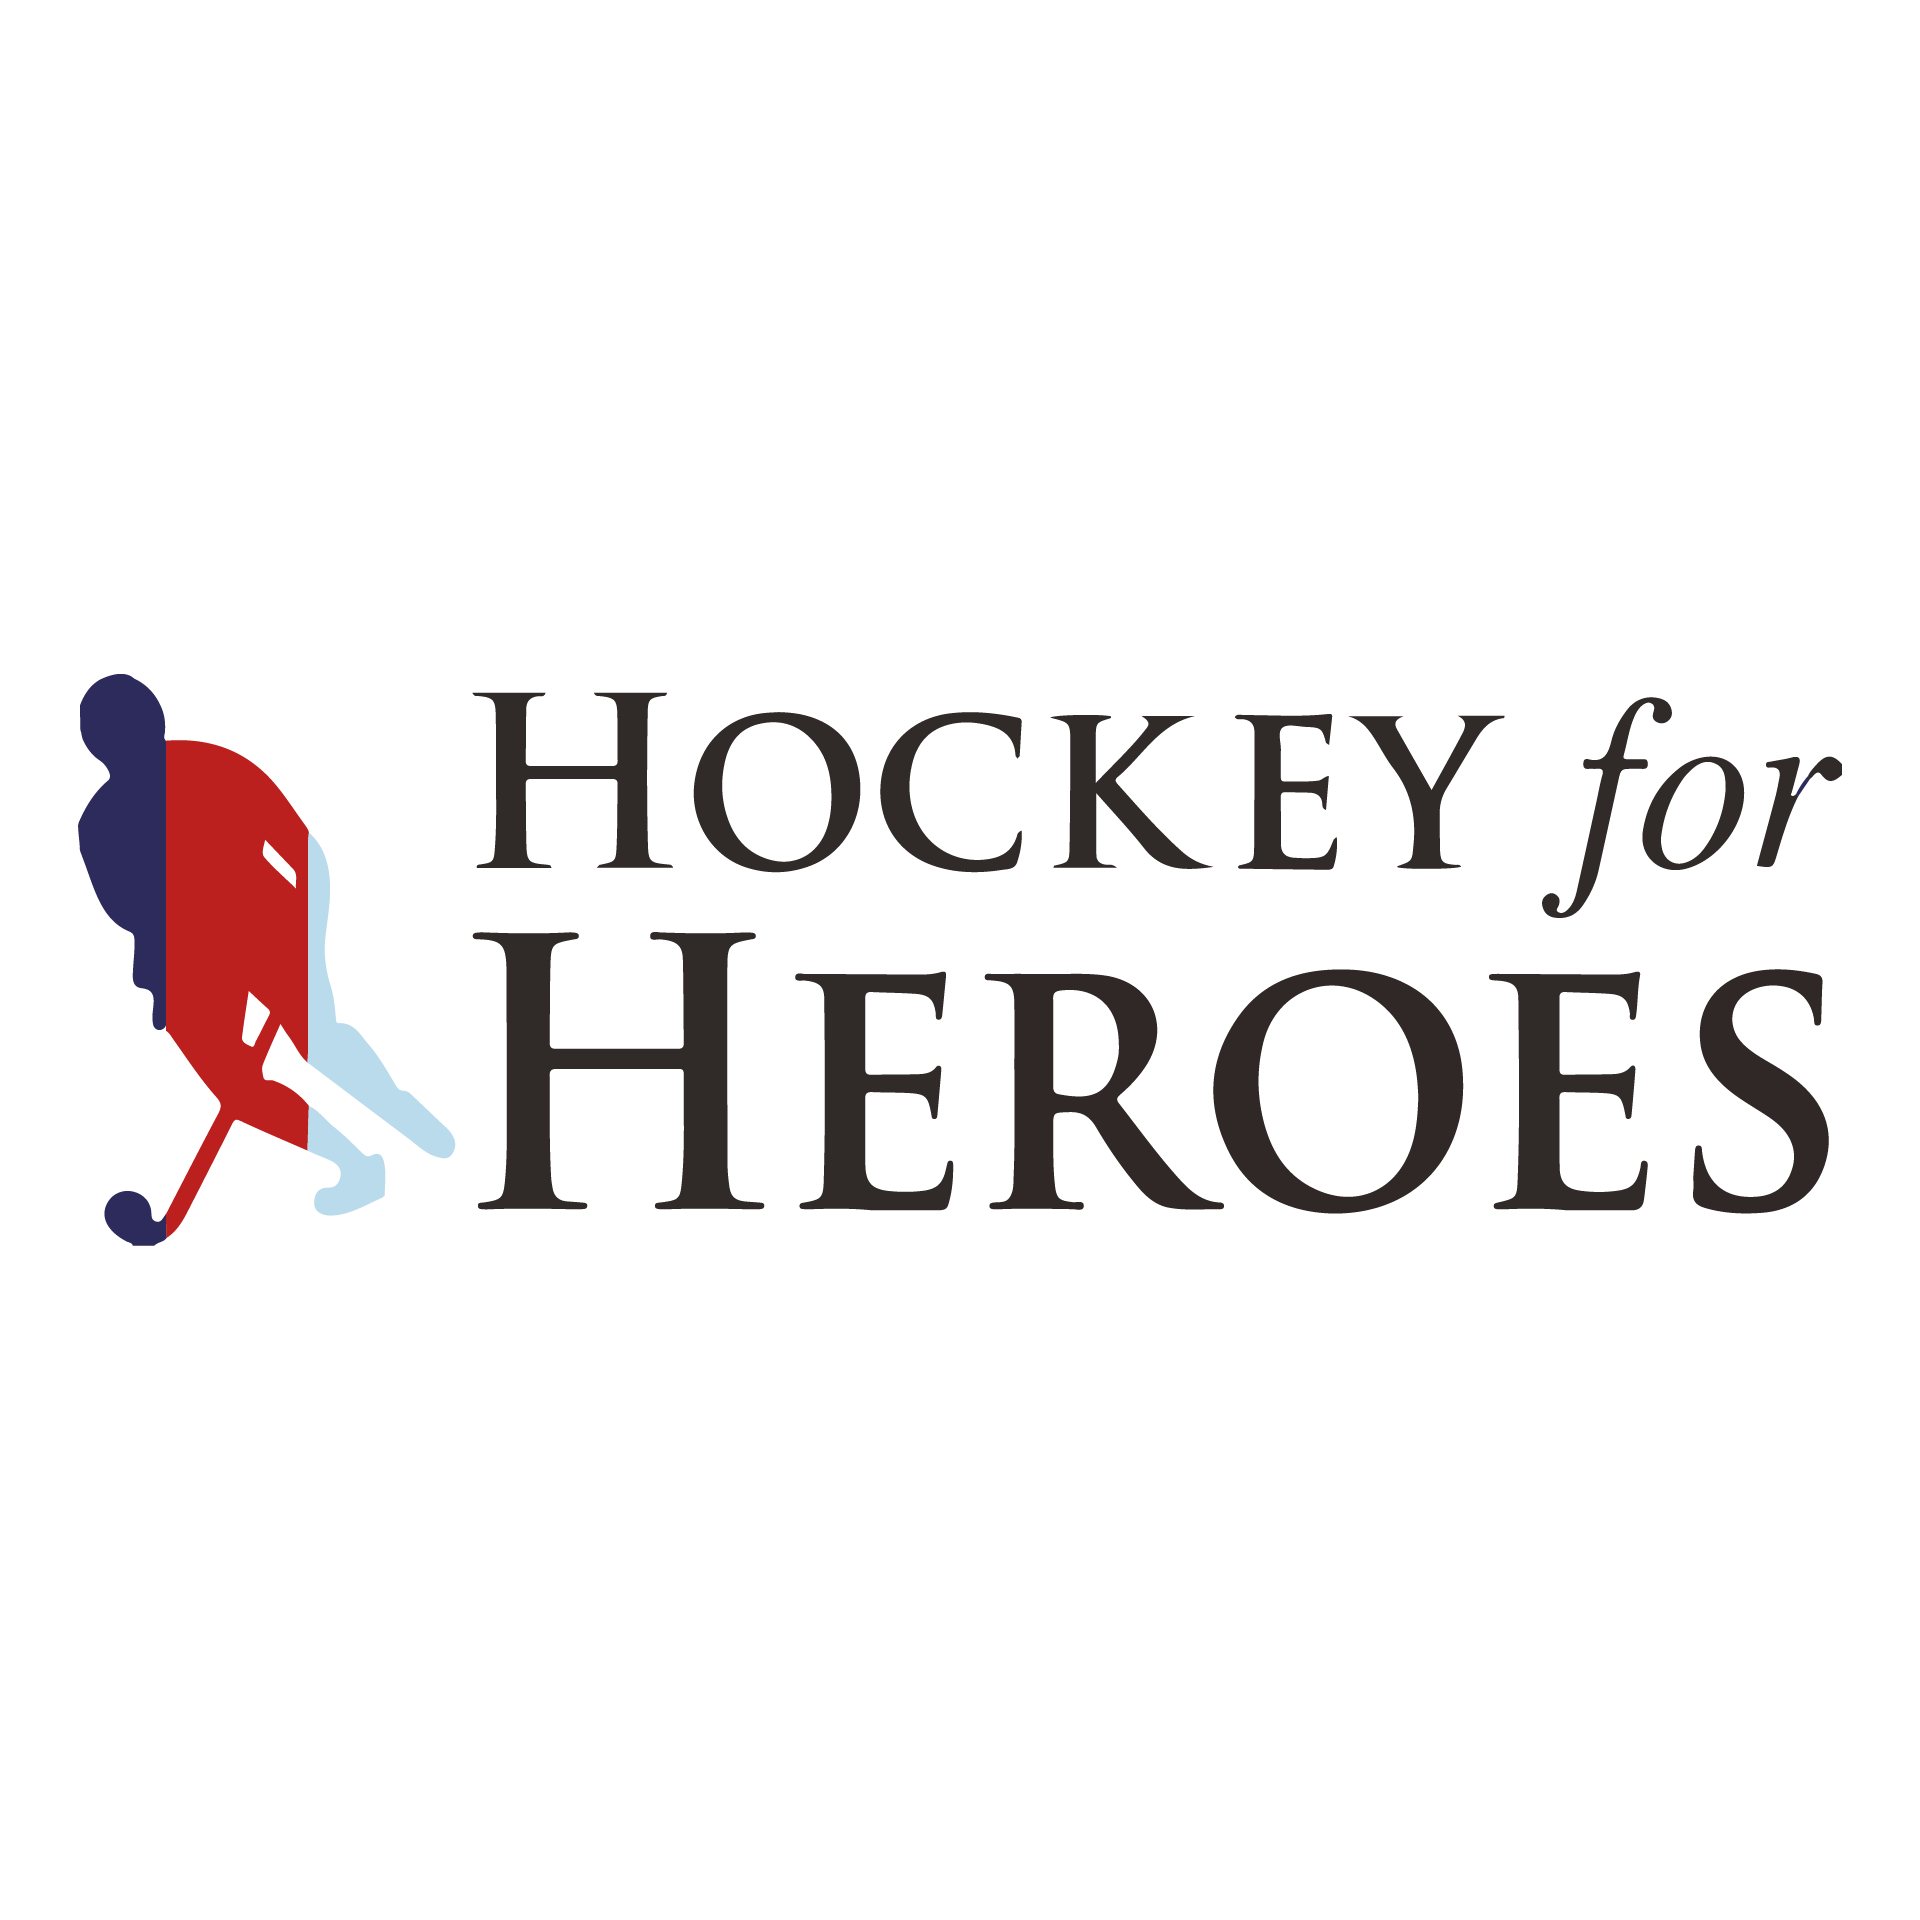 Hockey For Heroes-01